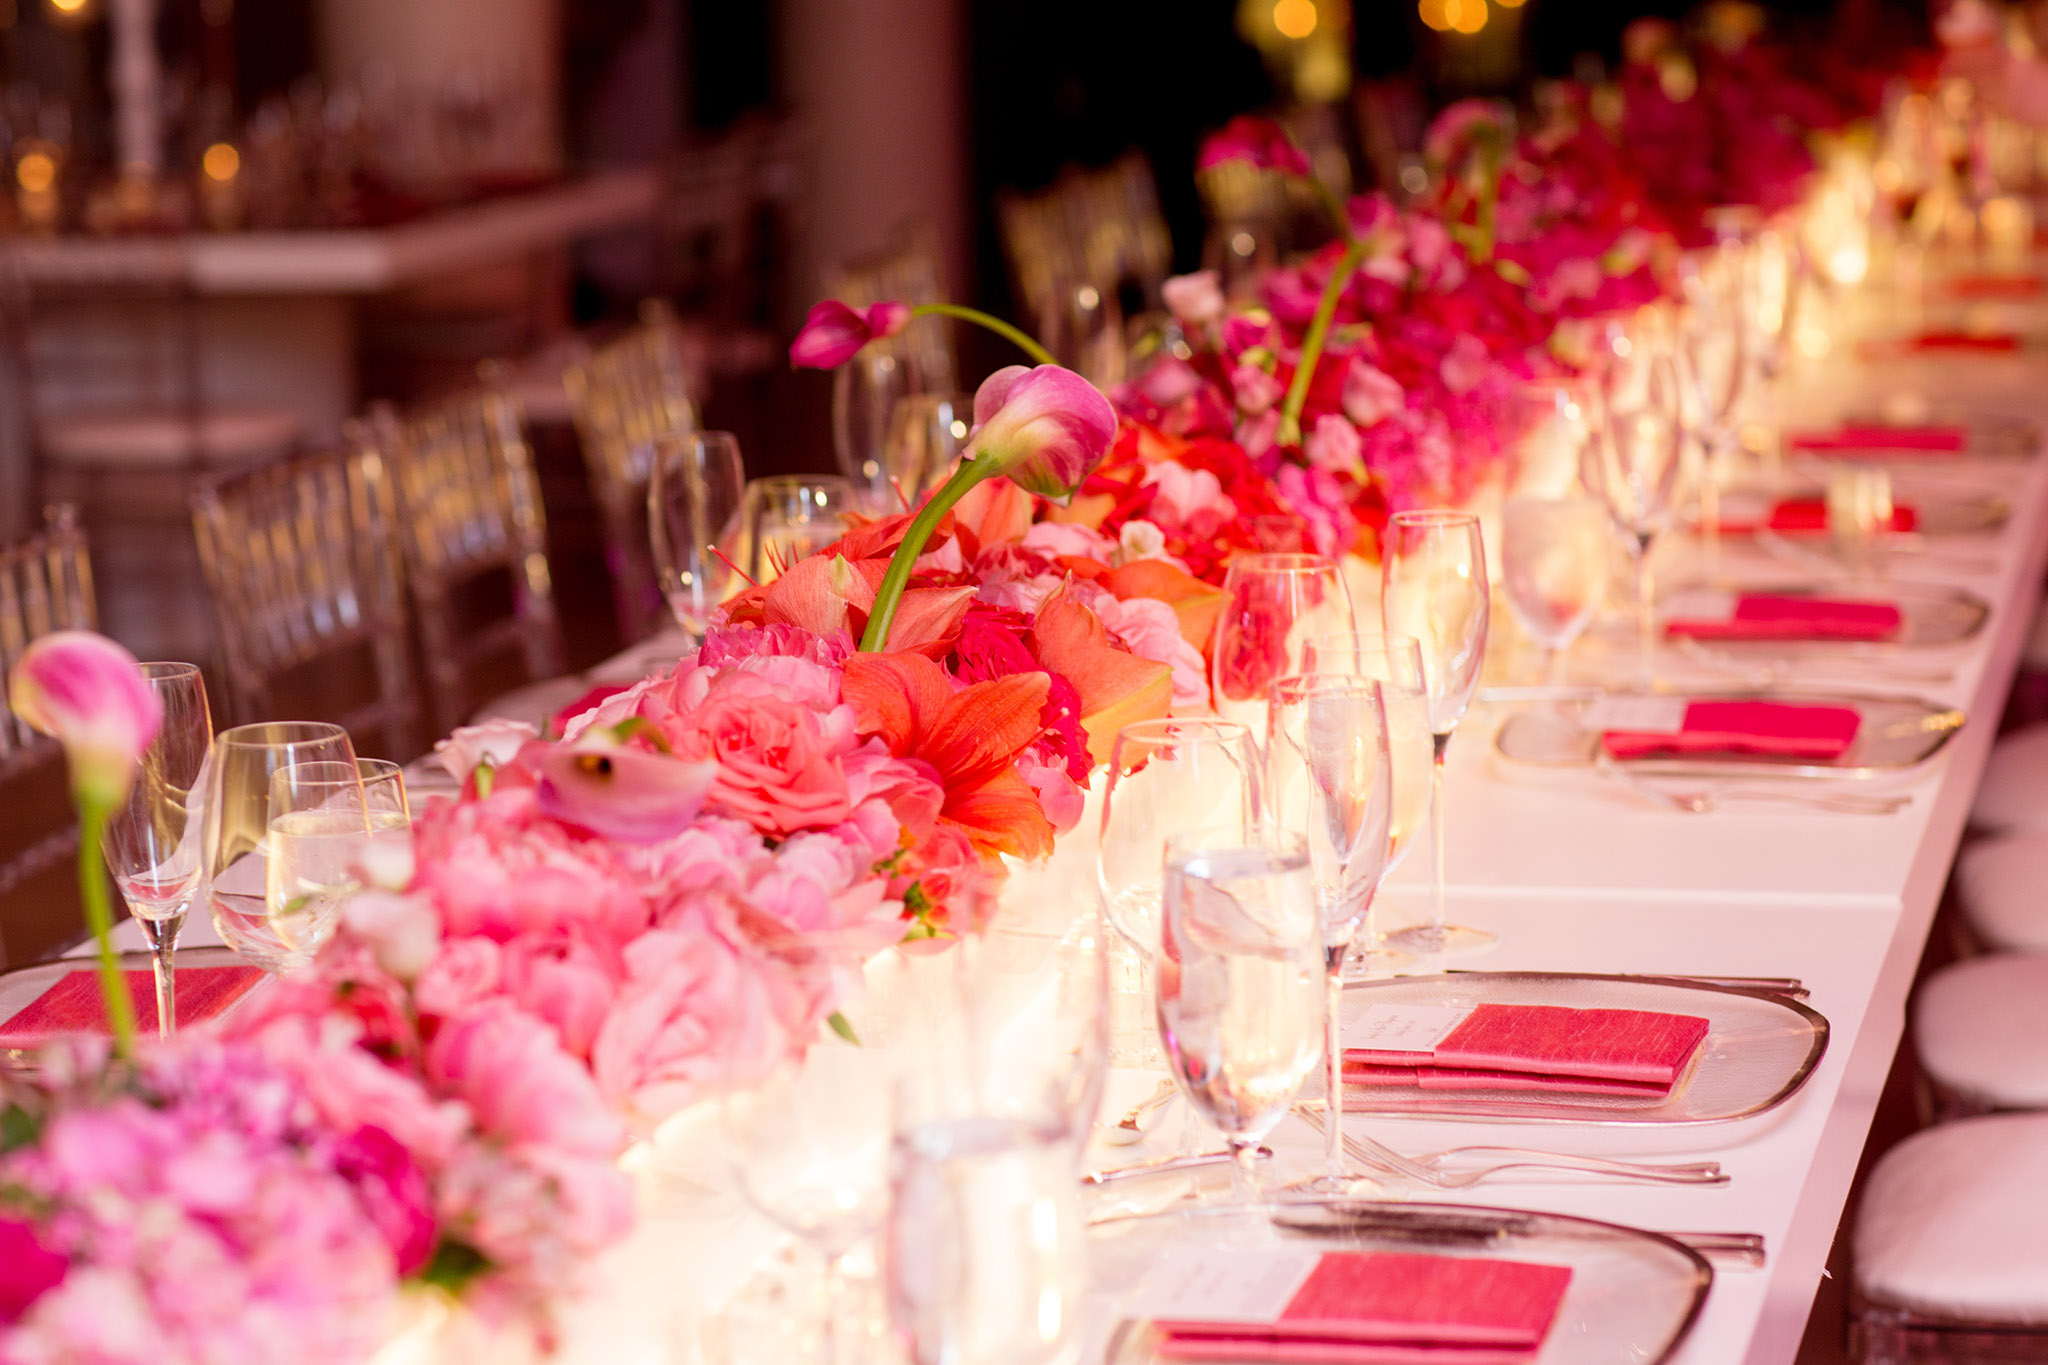 Ombre floral table runner at wedding reception